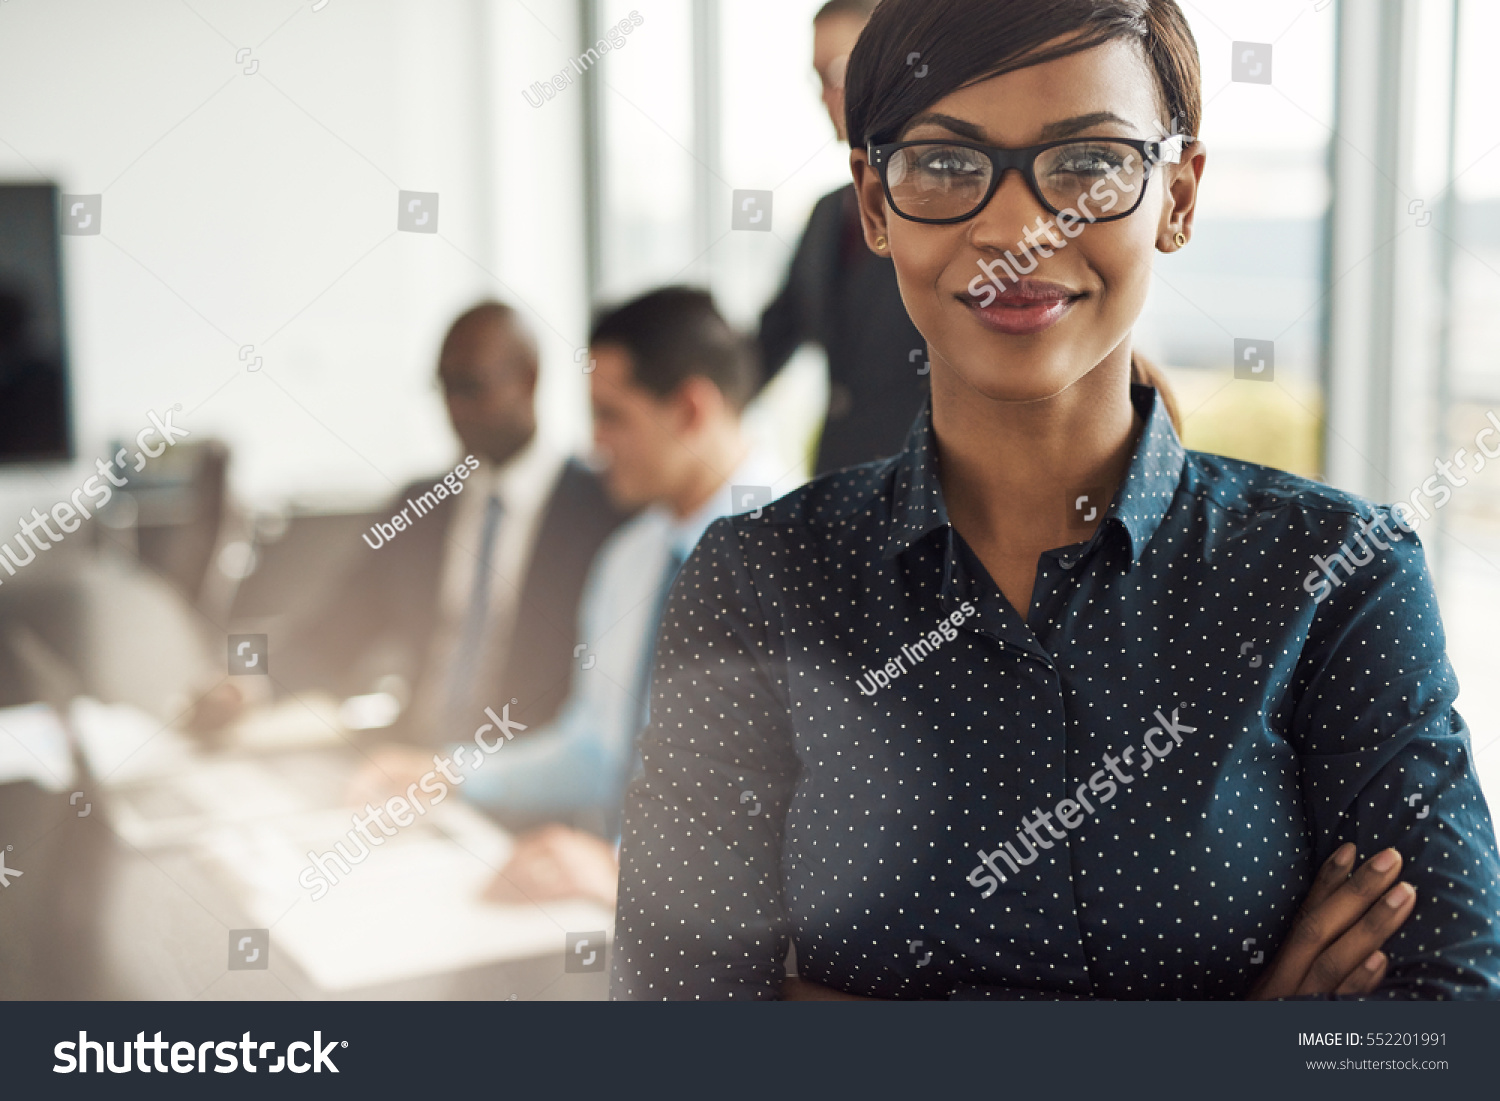 stock-photo-beautiful-young-grinning-professional-black-woman-in-office-with-eyeglasses-folded-arms-and-552201991.jpg